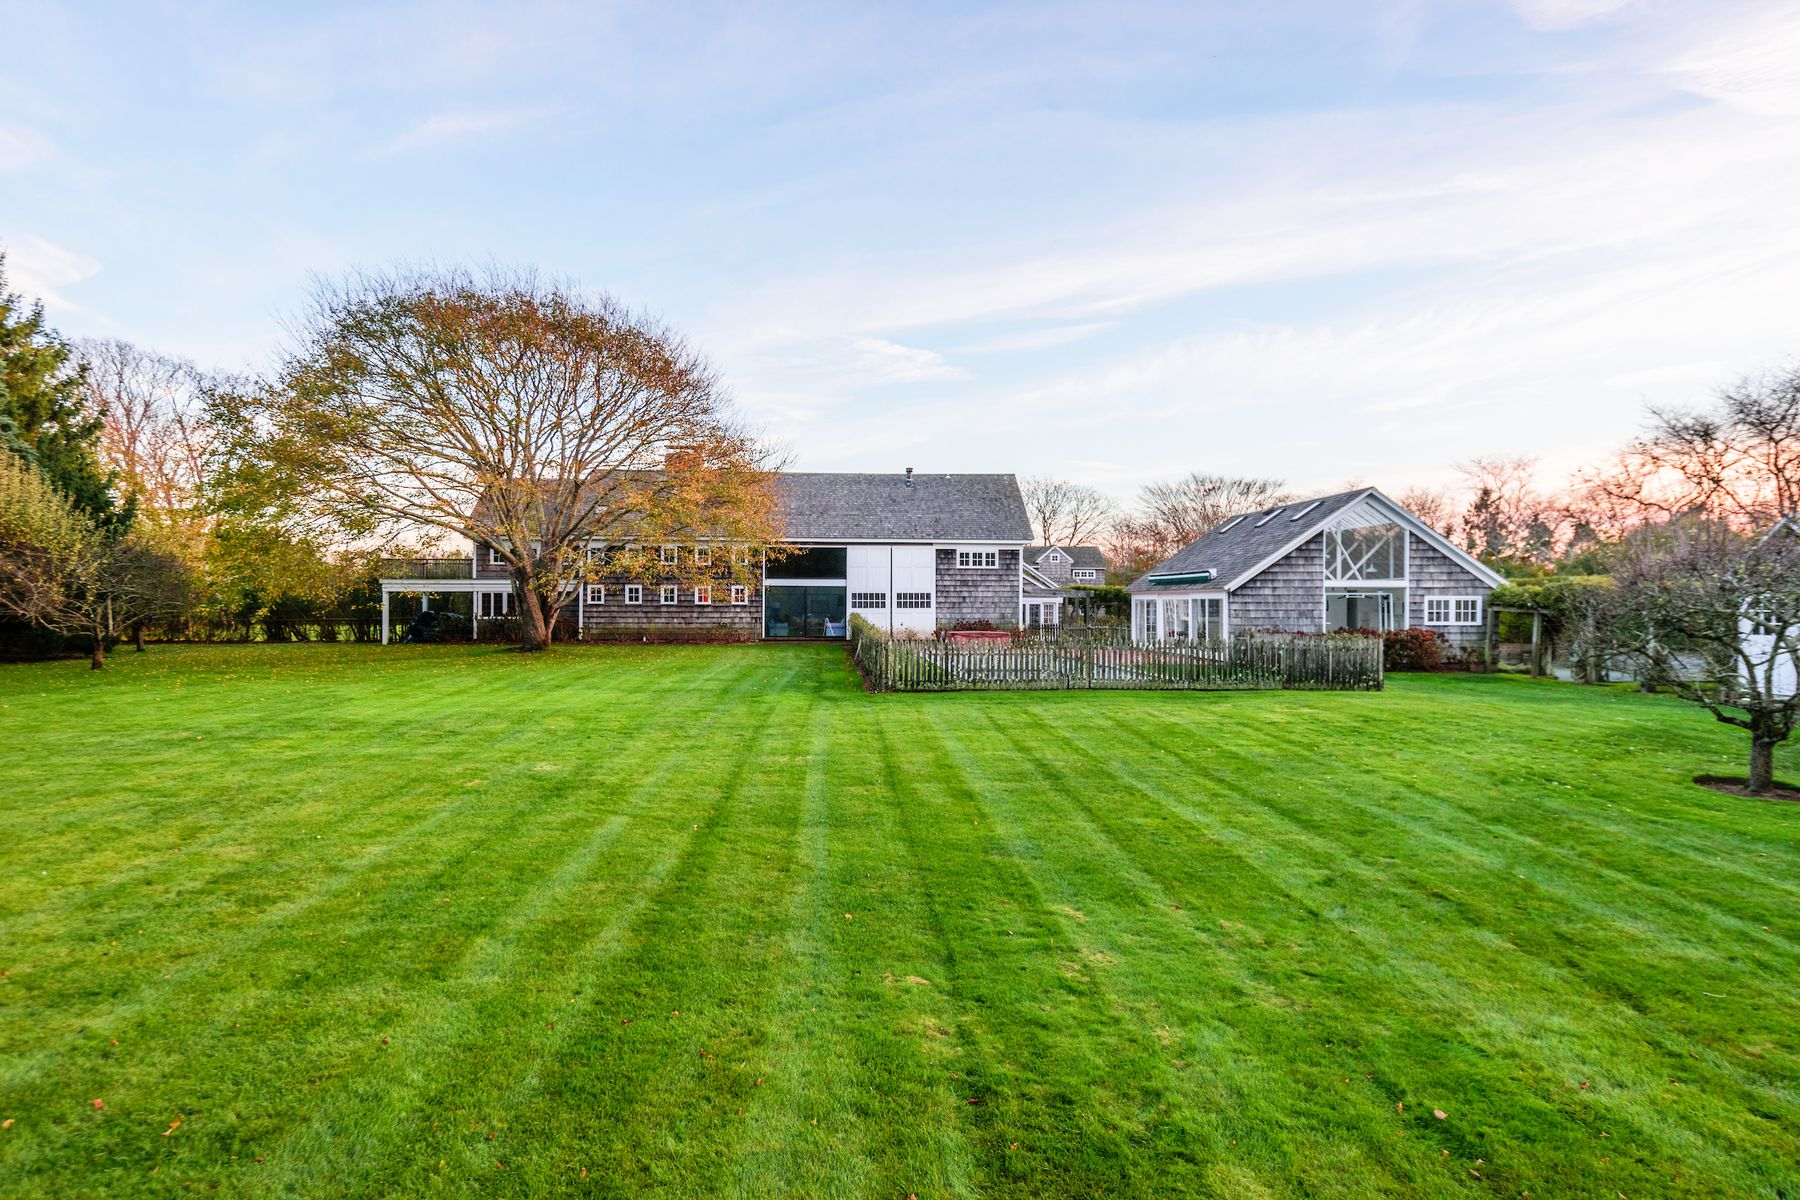 Single Family Homes för Försäljning vid SAGAPONACK SOUTH 4+ ACRE COMPOUND 544 Hedges Lane, Sagaponack, New York 11962 Förenta staterna